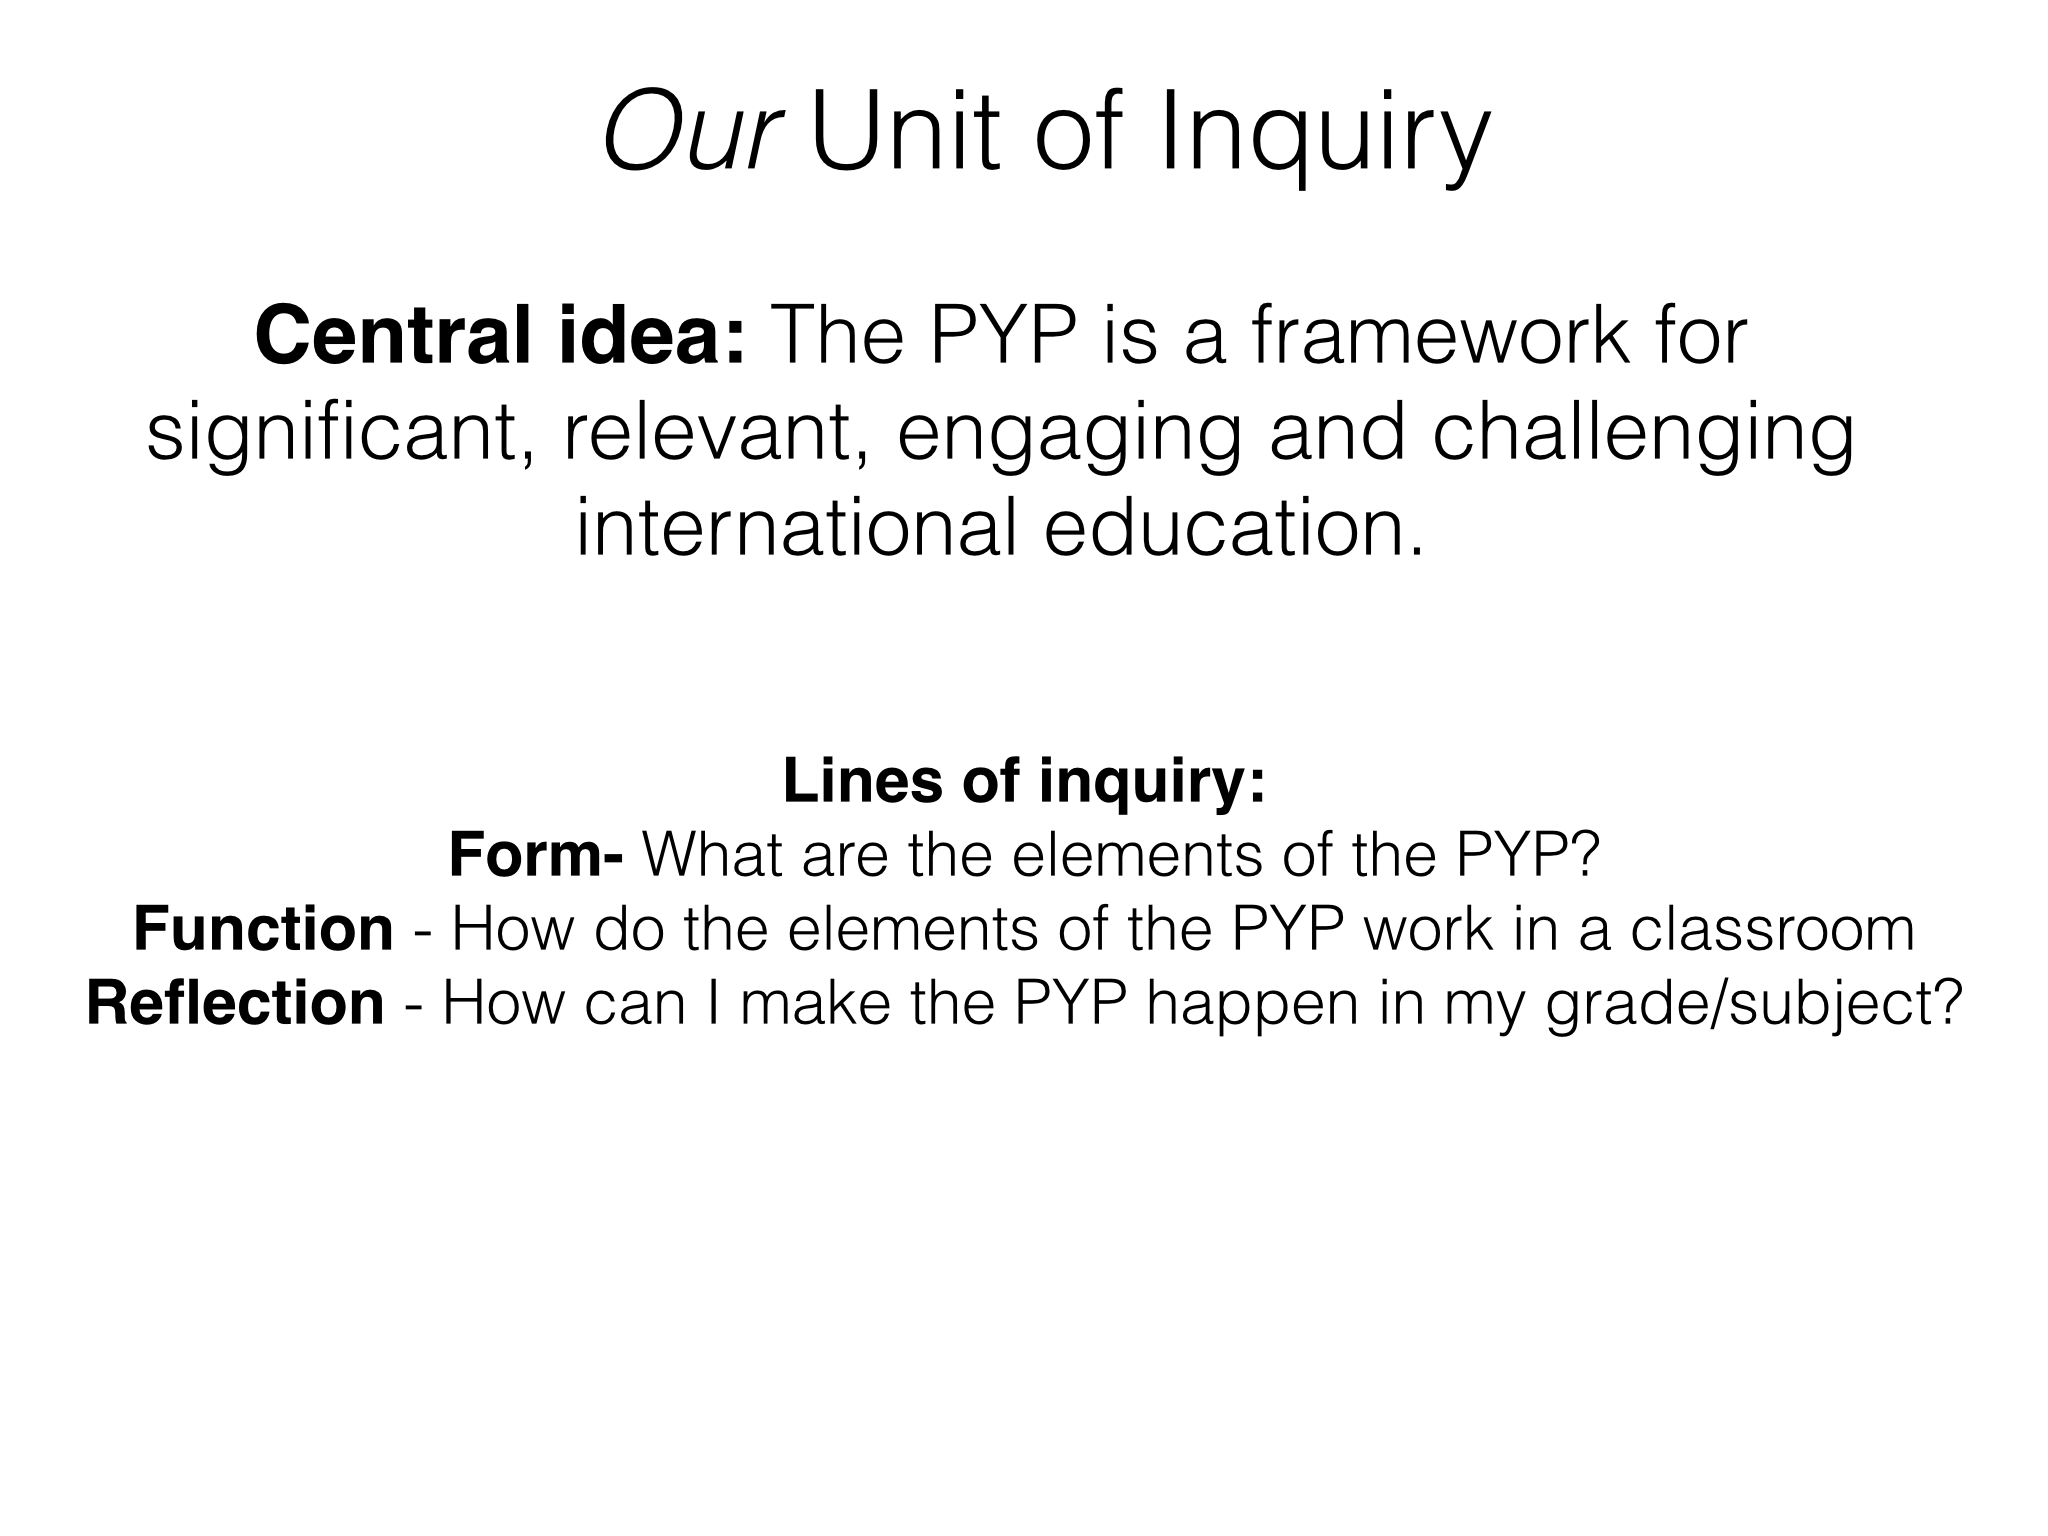 Pyp New Staff Induction As A Unit Of Inquiry Be A Nice Human Essential Elements Inquiry [ 1536 x 2048 Pixel ]